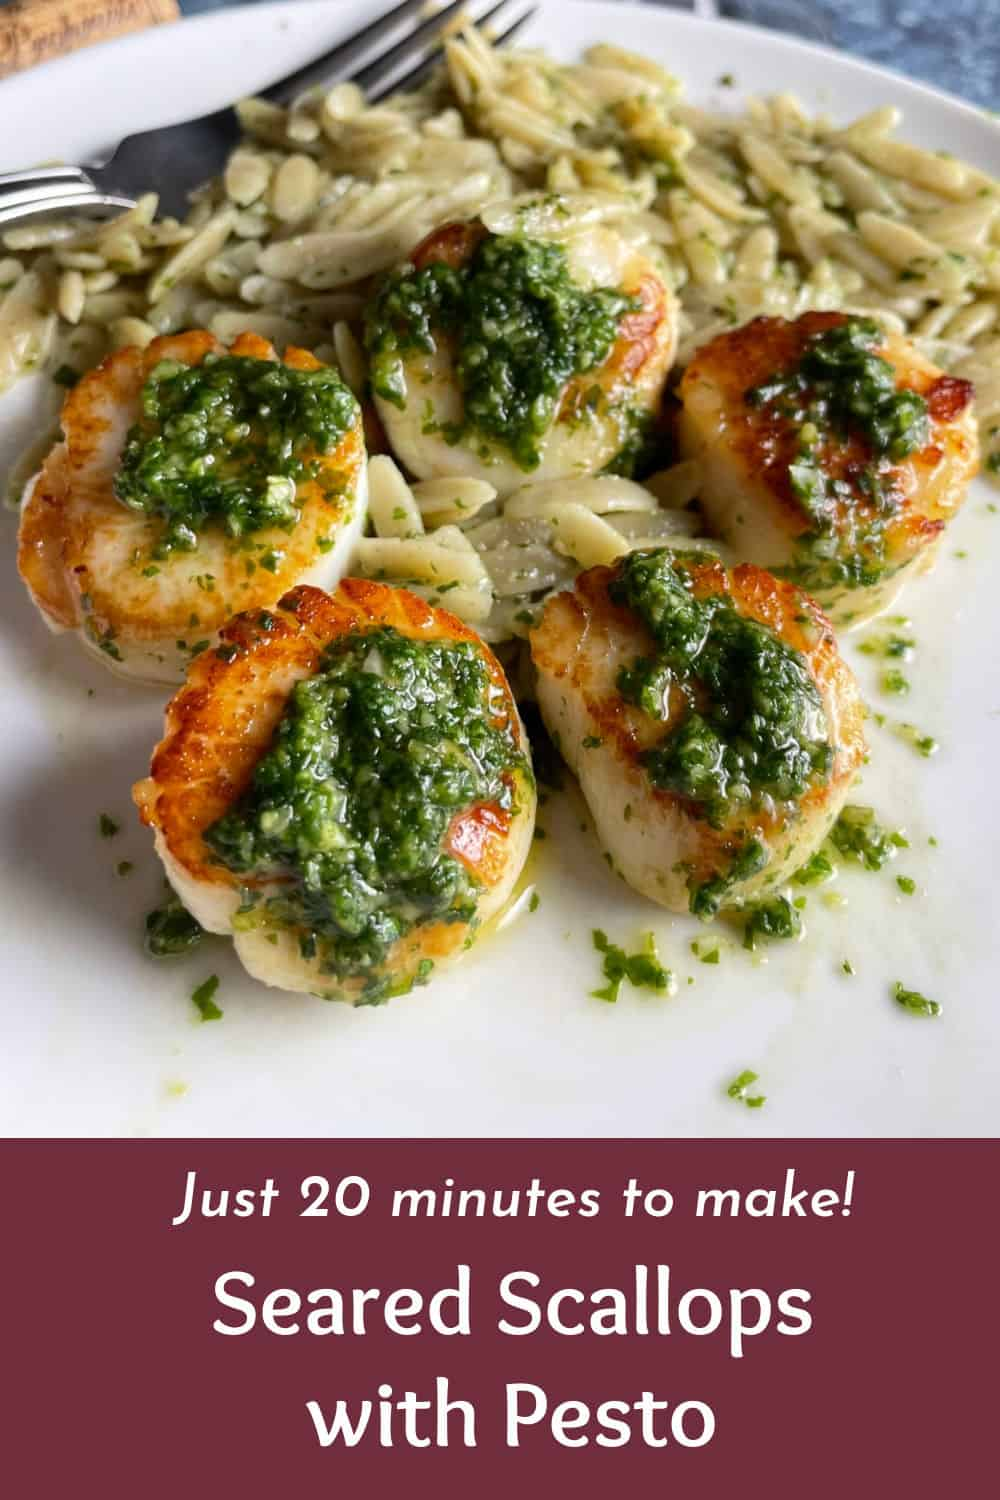 Scallops served with pesto and a side of orzo pasta. With text description underneath photo.